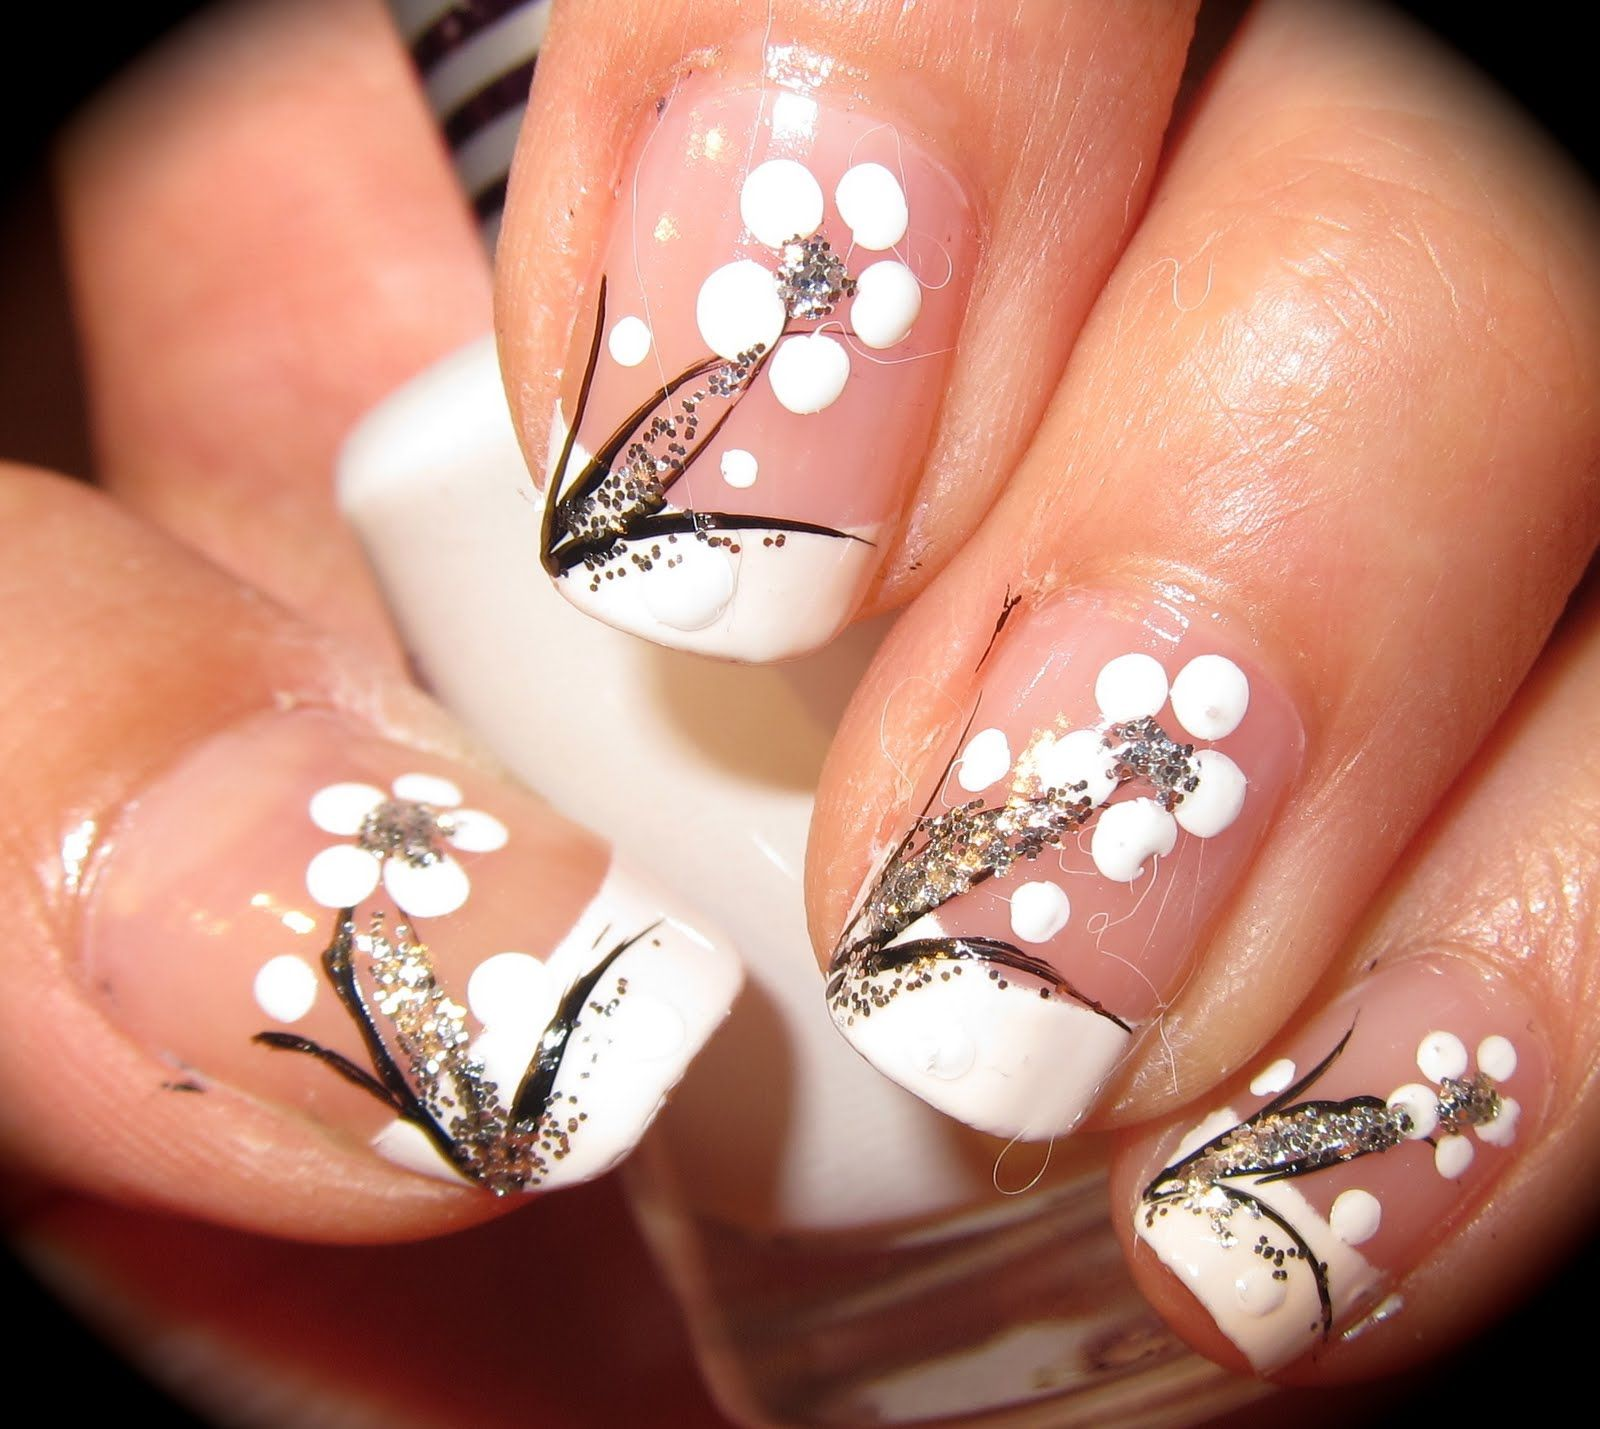 Nail Design Art 2015 Latest Nail Art Fashion for Girls Women | Nail ...